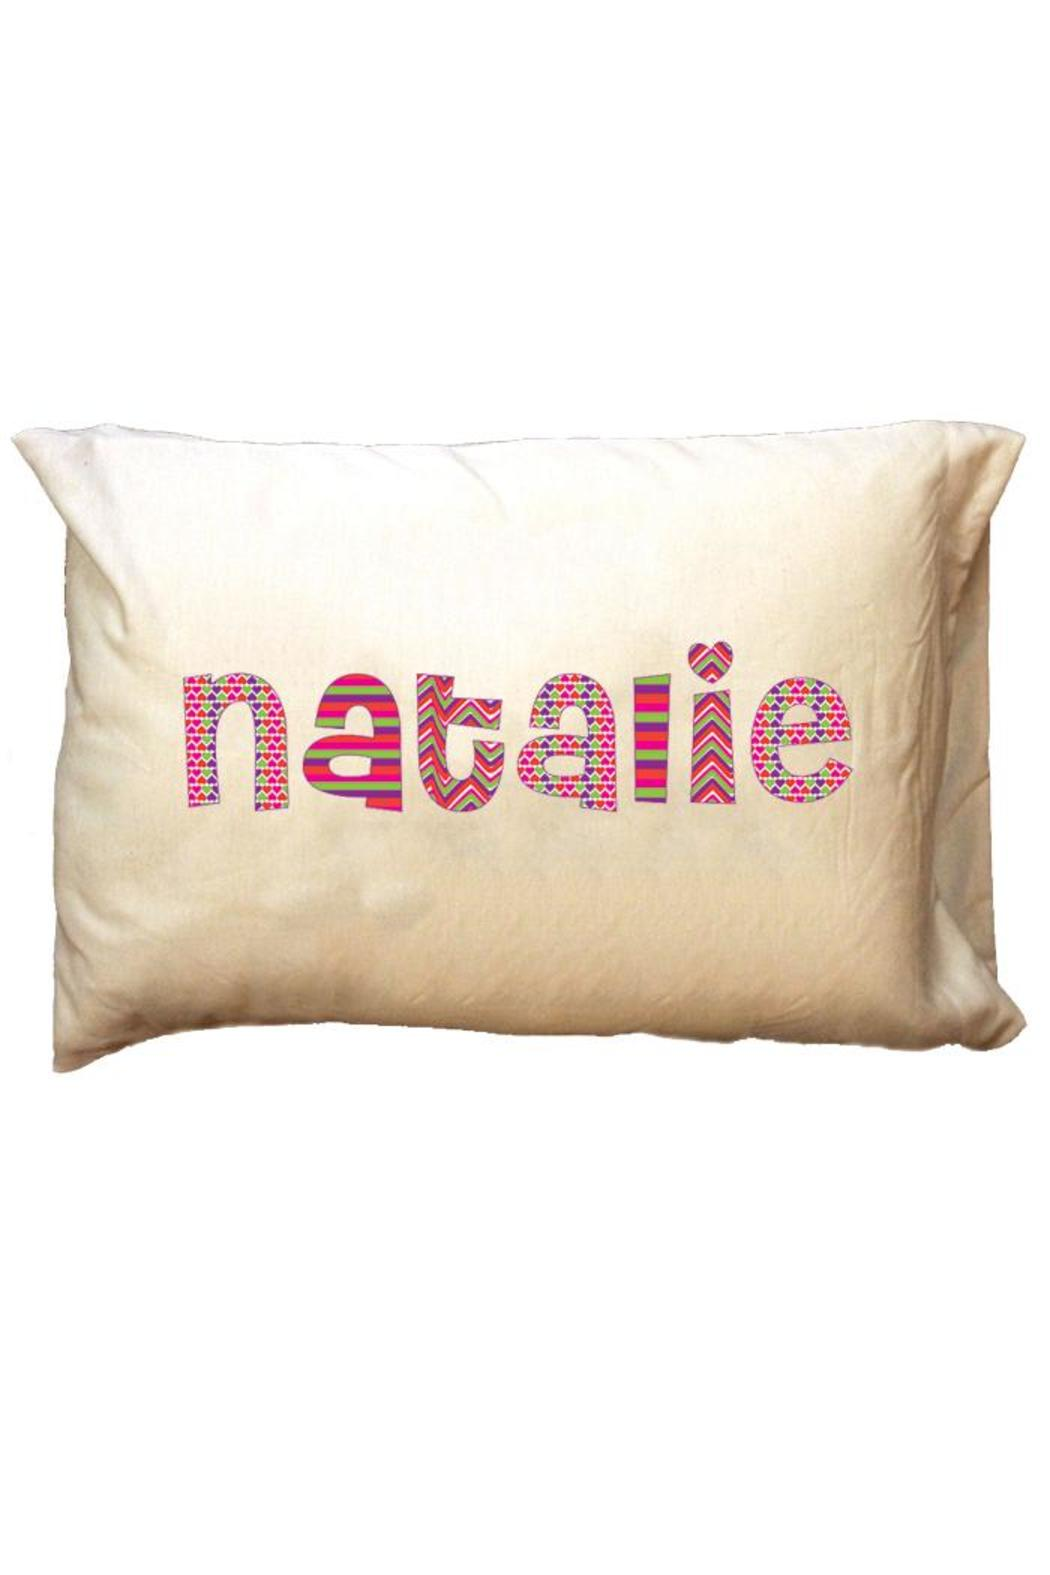 Party Cat Personalized Pink-Patterns Pillowcase - Main Image